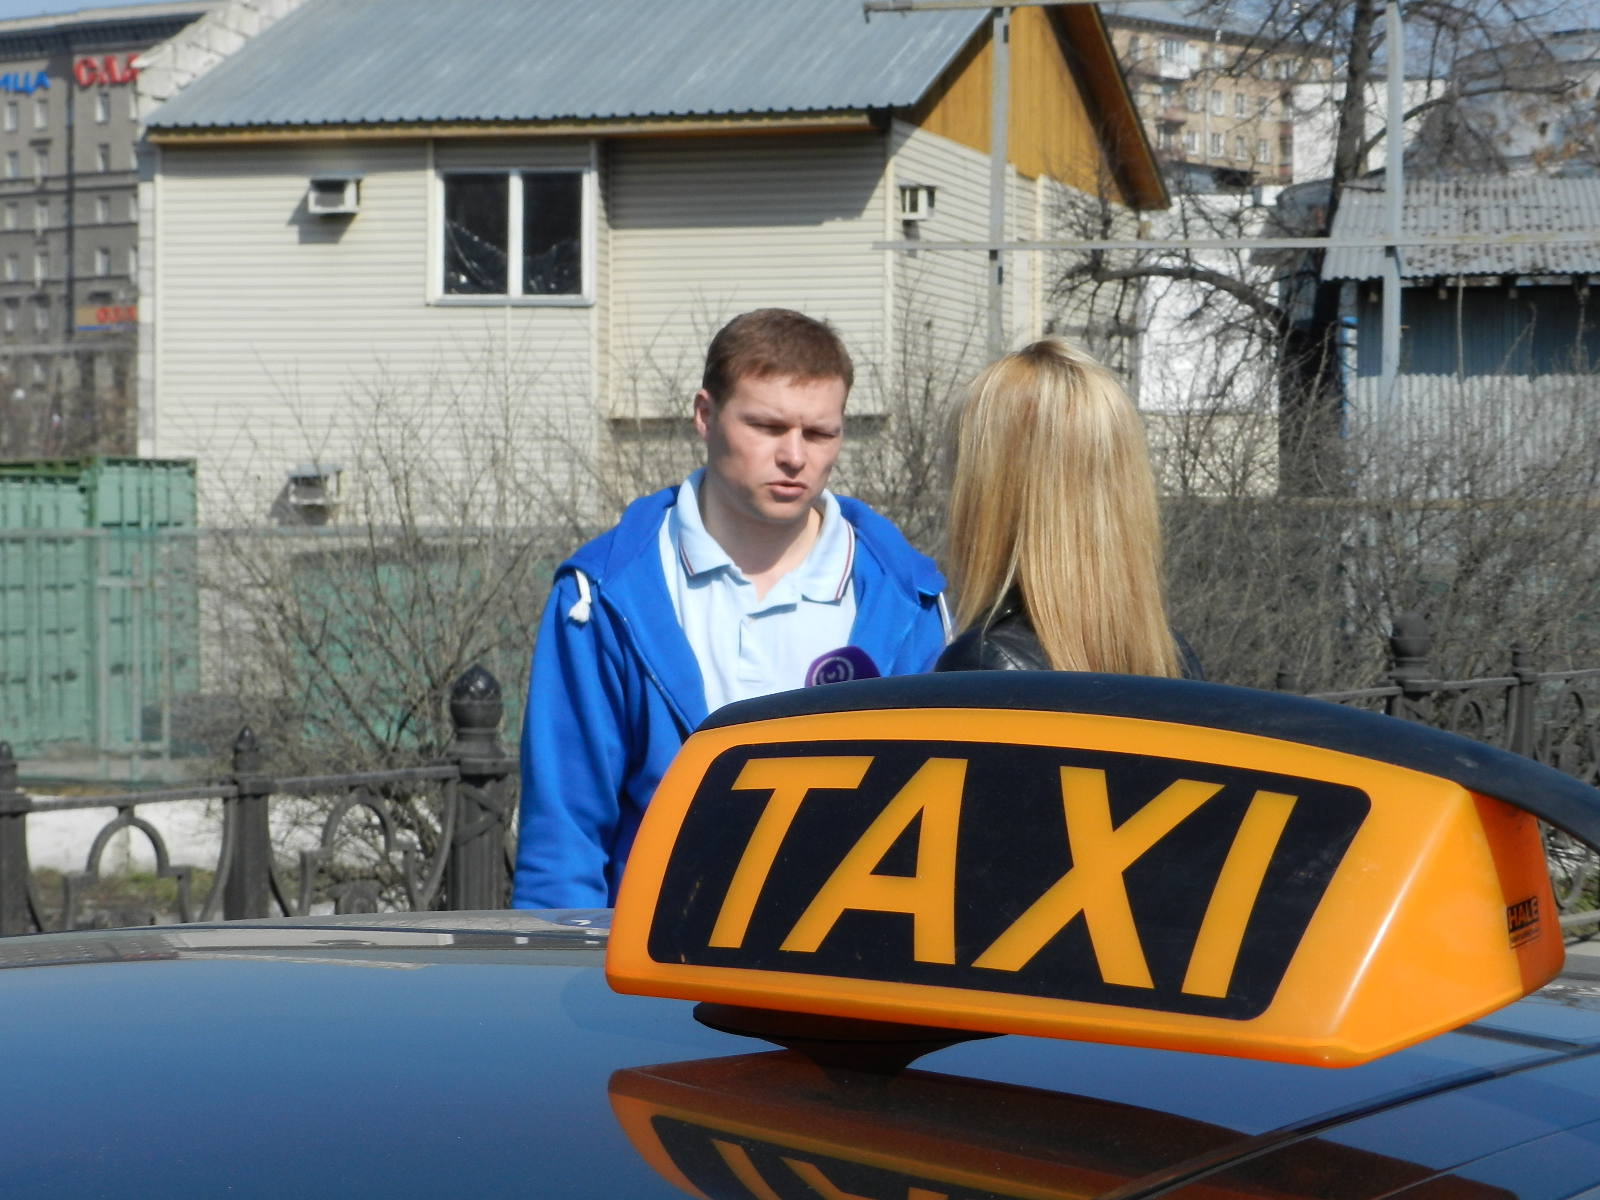 miting-taxistov-2013-god